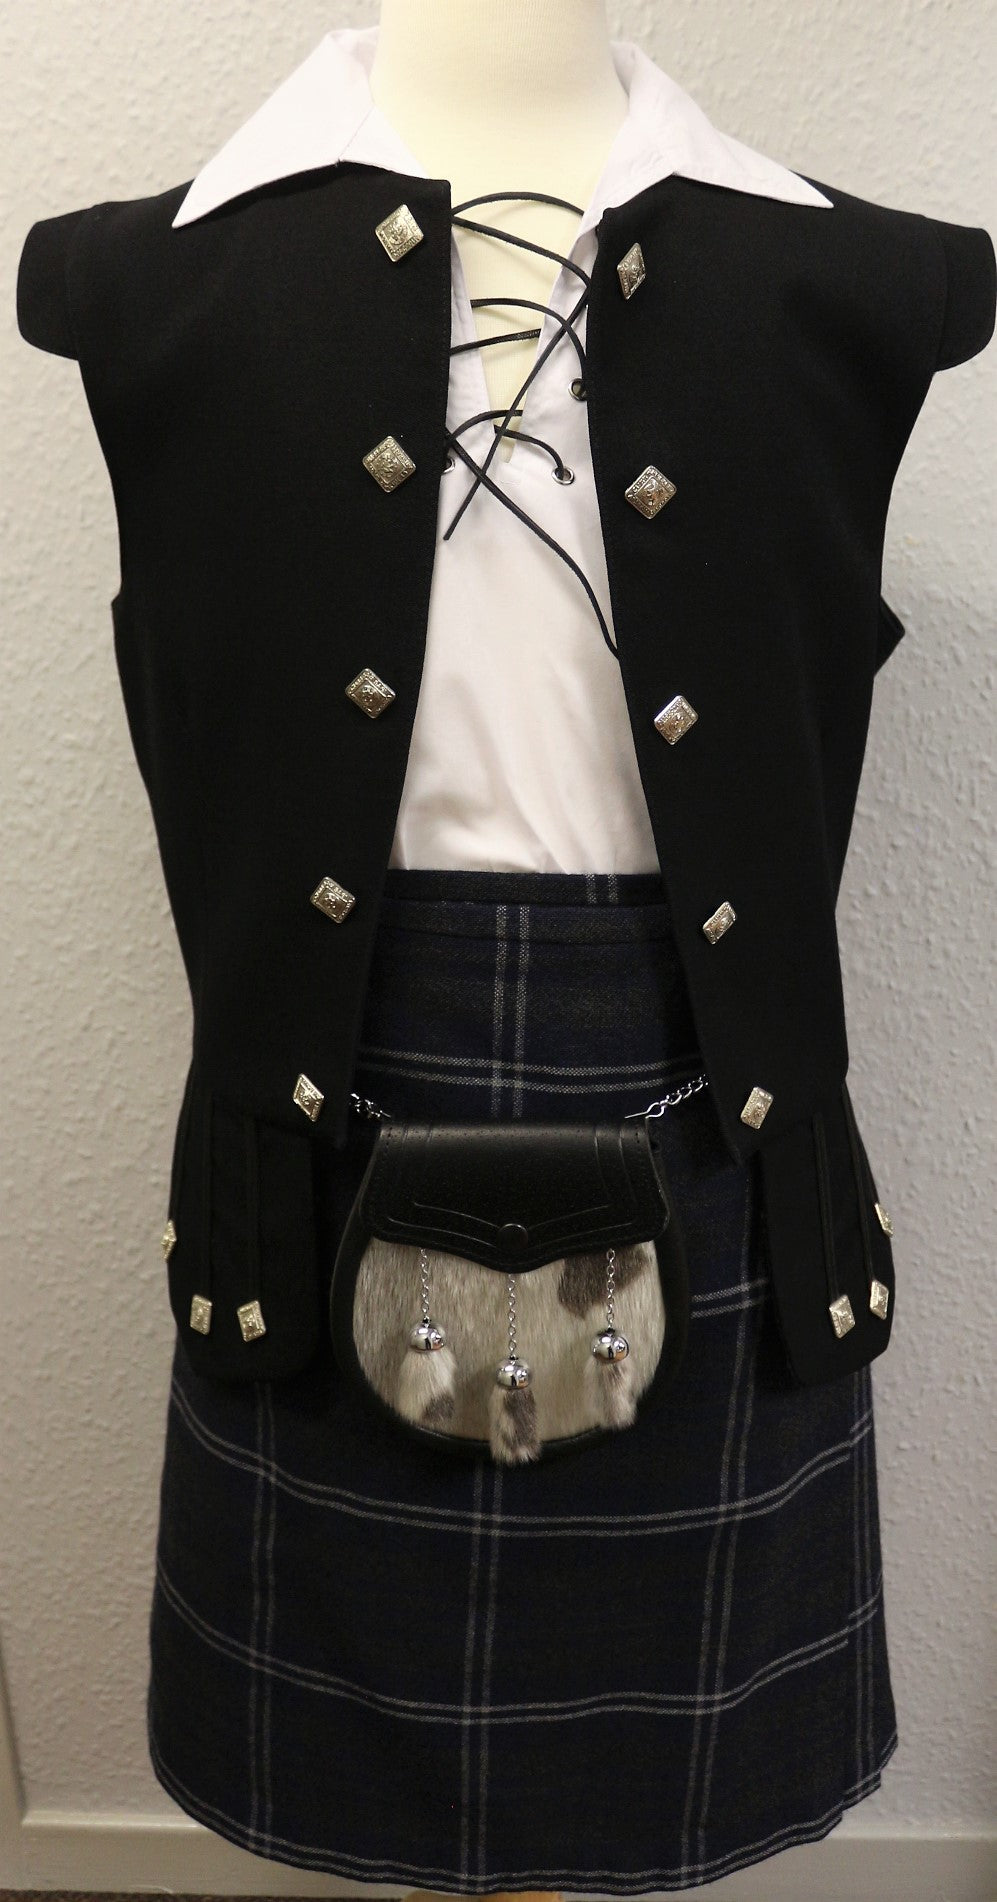 Boys Frontier kilt hire outfit with Grey Galloway tartan kilt  - Anderson Kilts